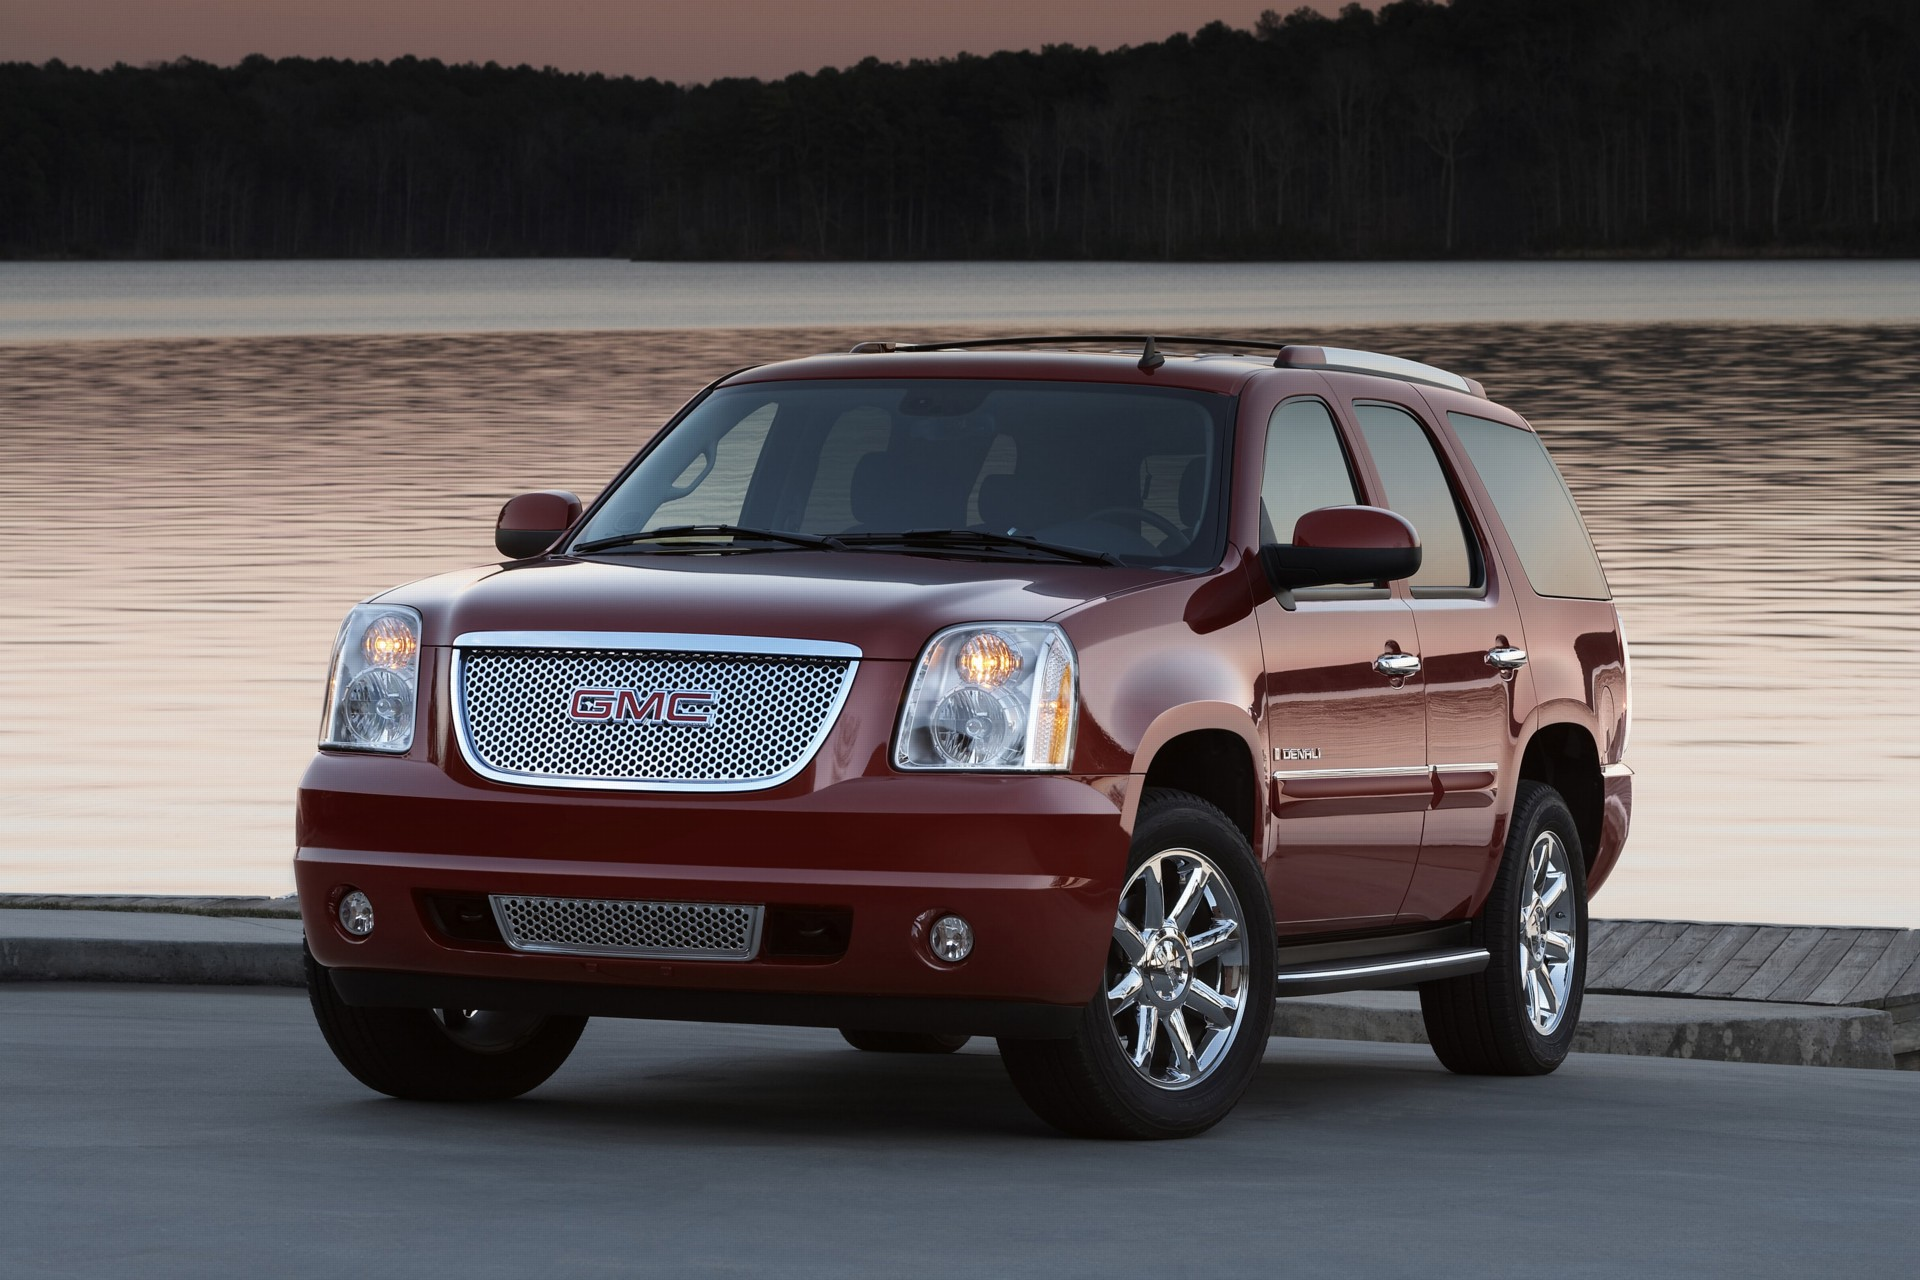 Gmc Denali N >> 2007 GMC Yukon Denali History, Pictures, Value, Auction Sales, Research and News